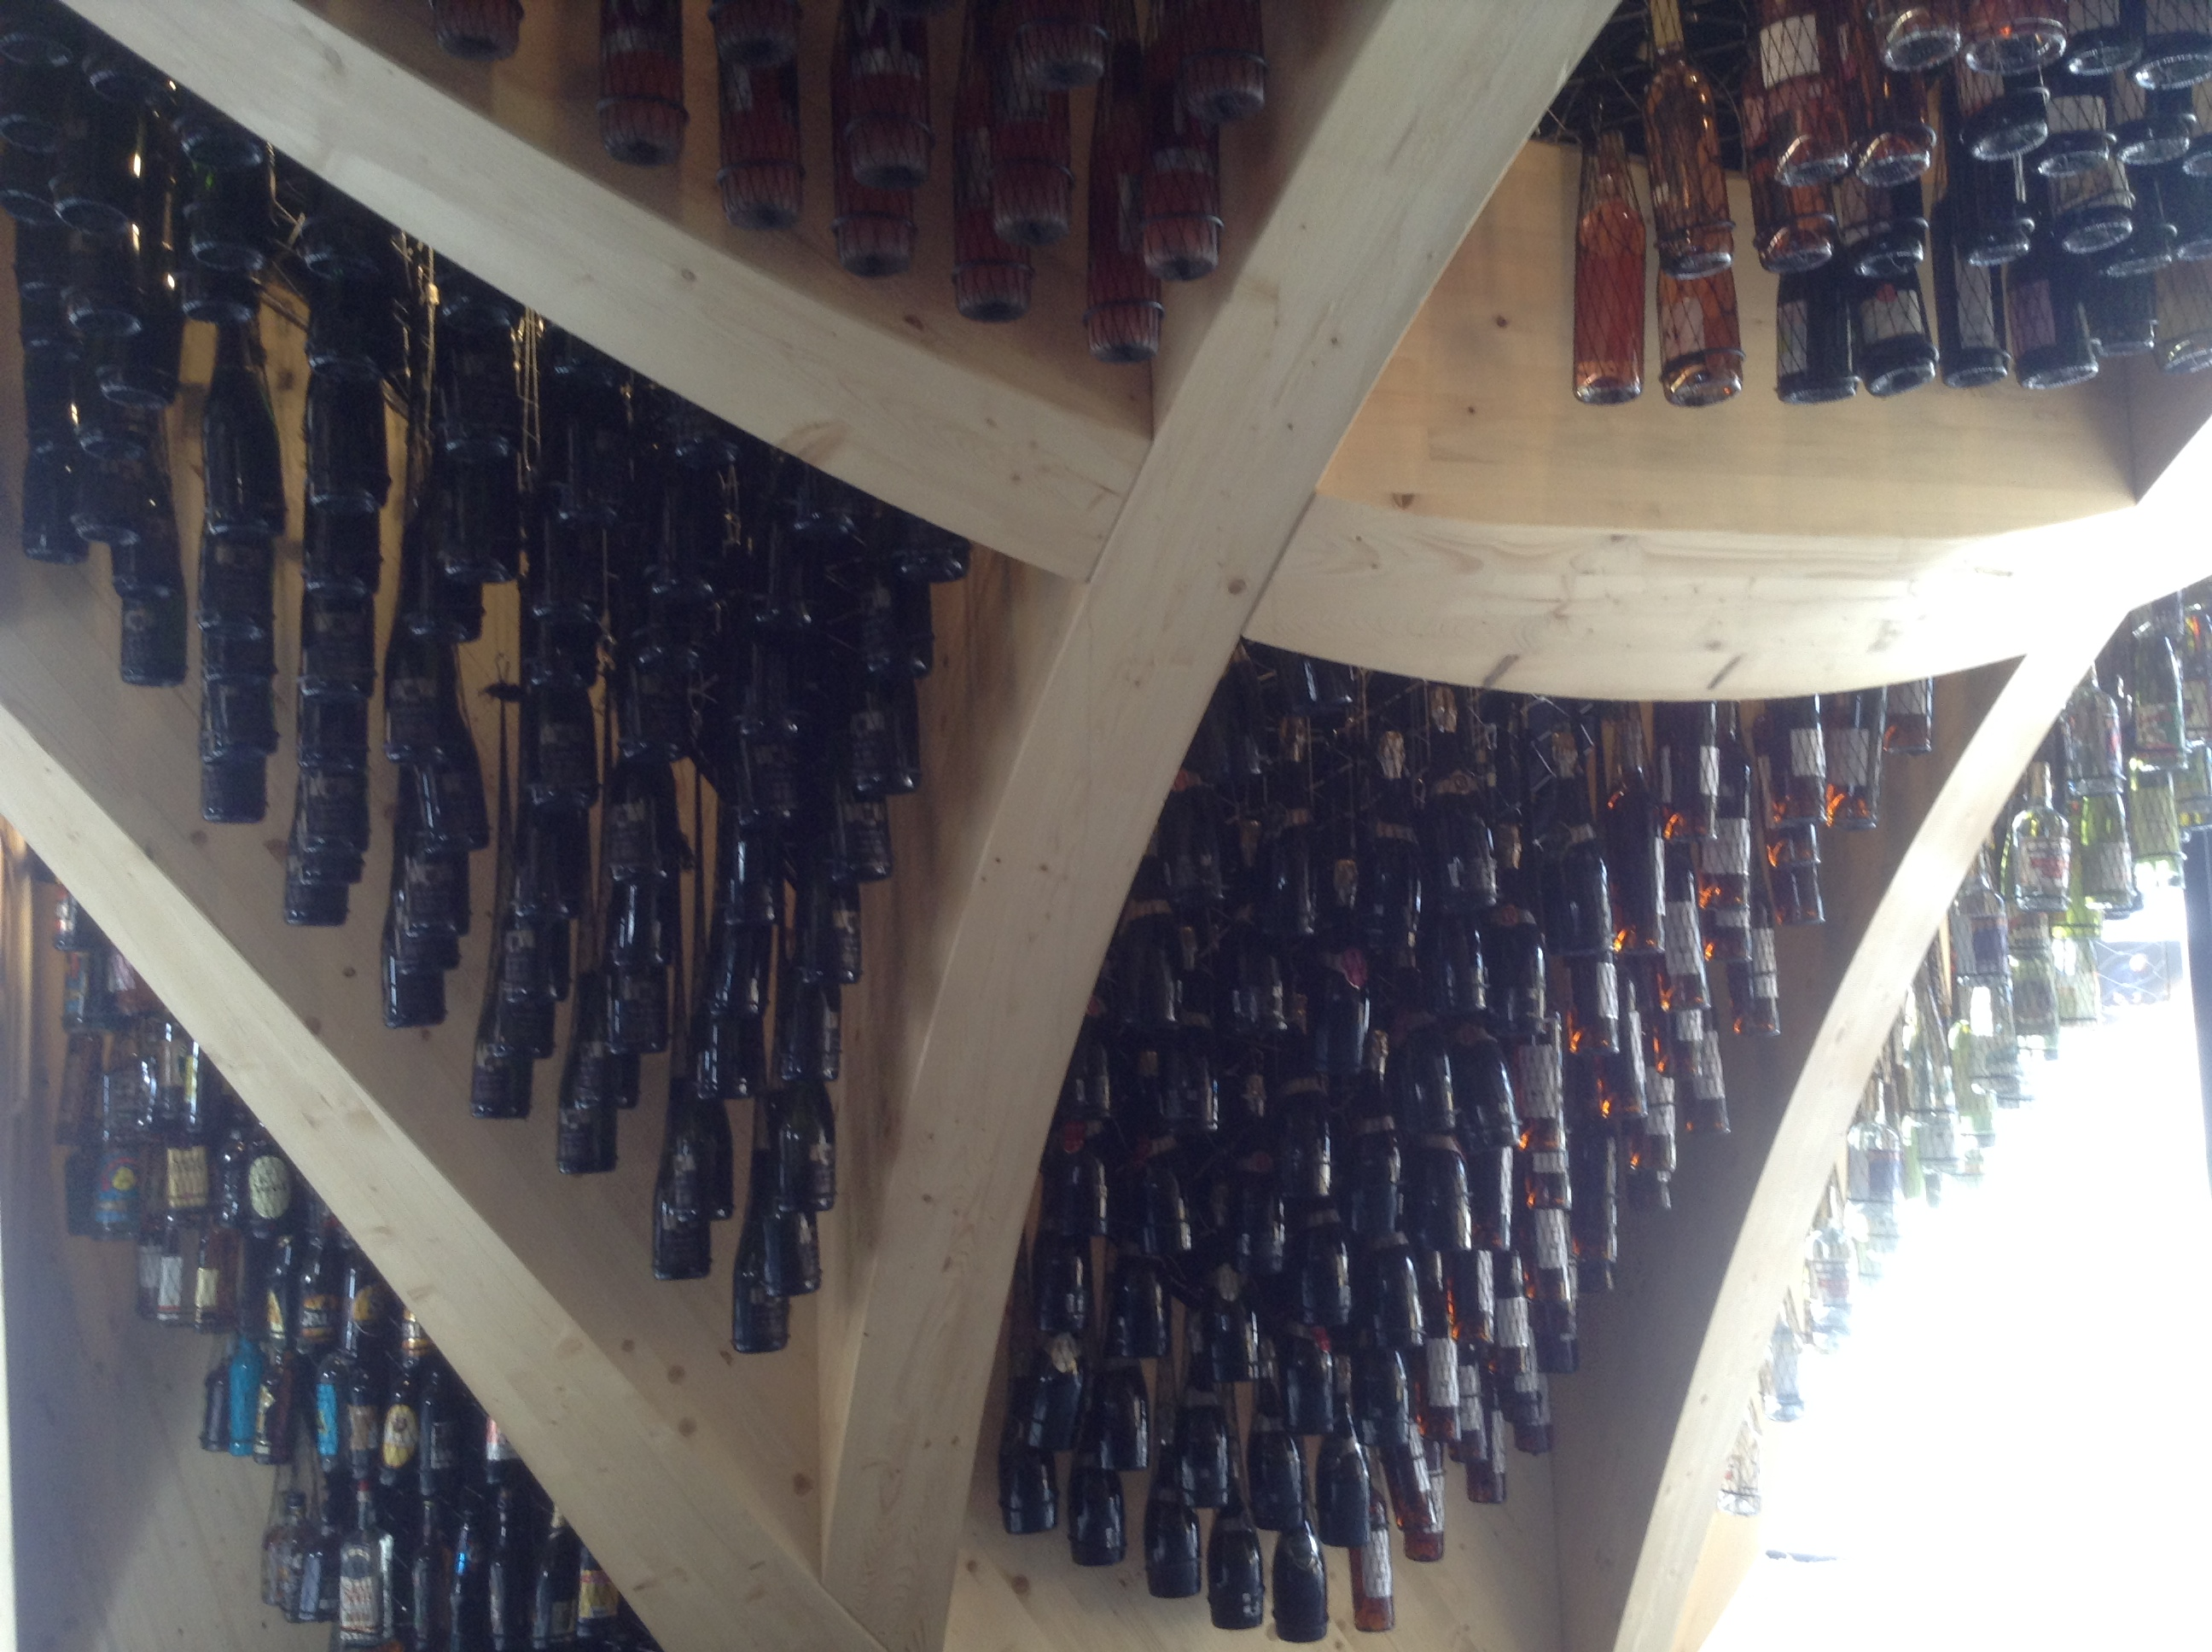 Wine storage in French pavilion, Milano Expo 2015, MilanKaRaja